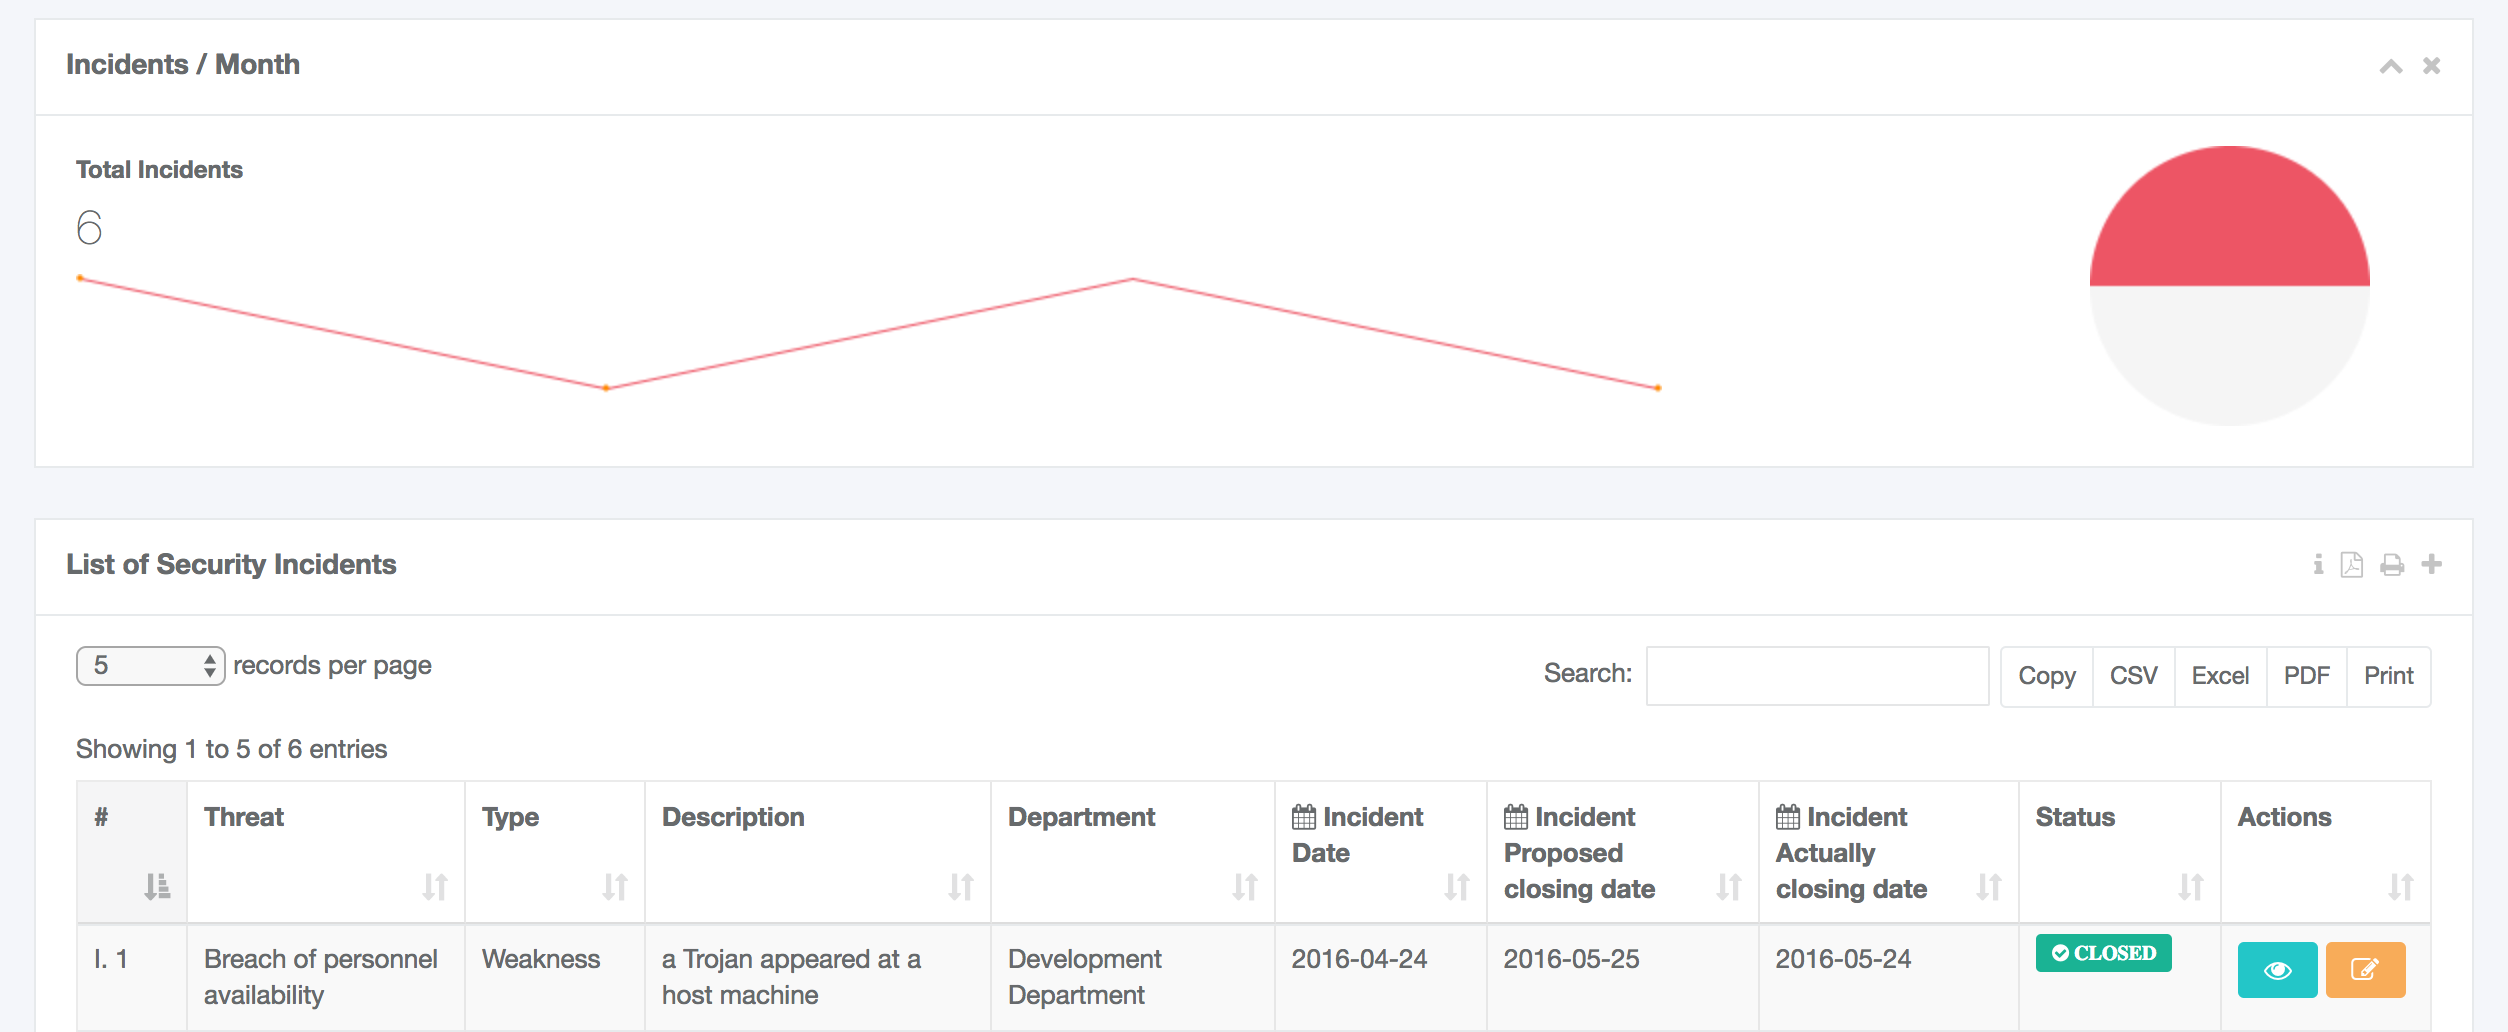 INCIDENT DASHBOARD